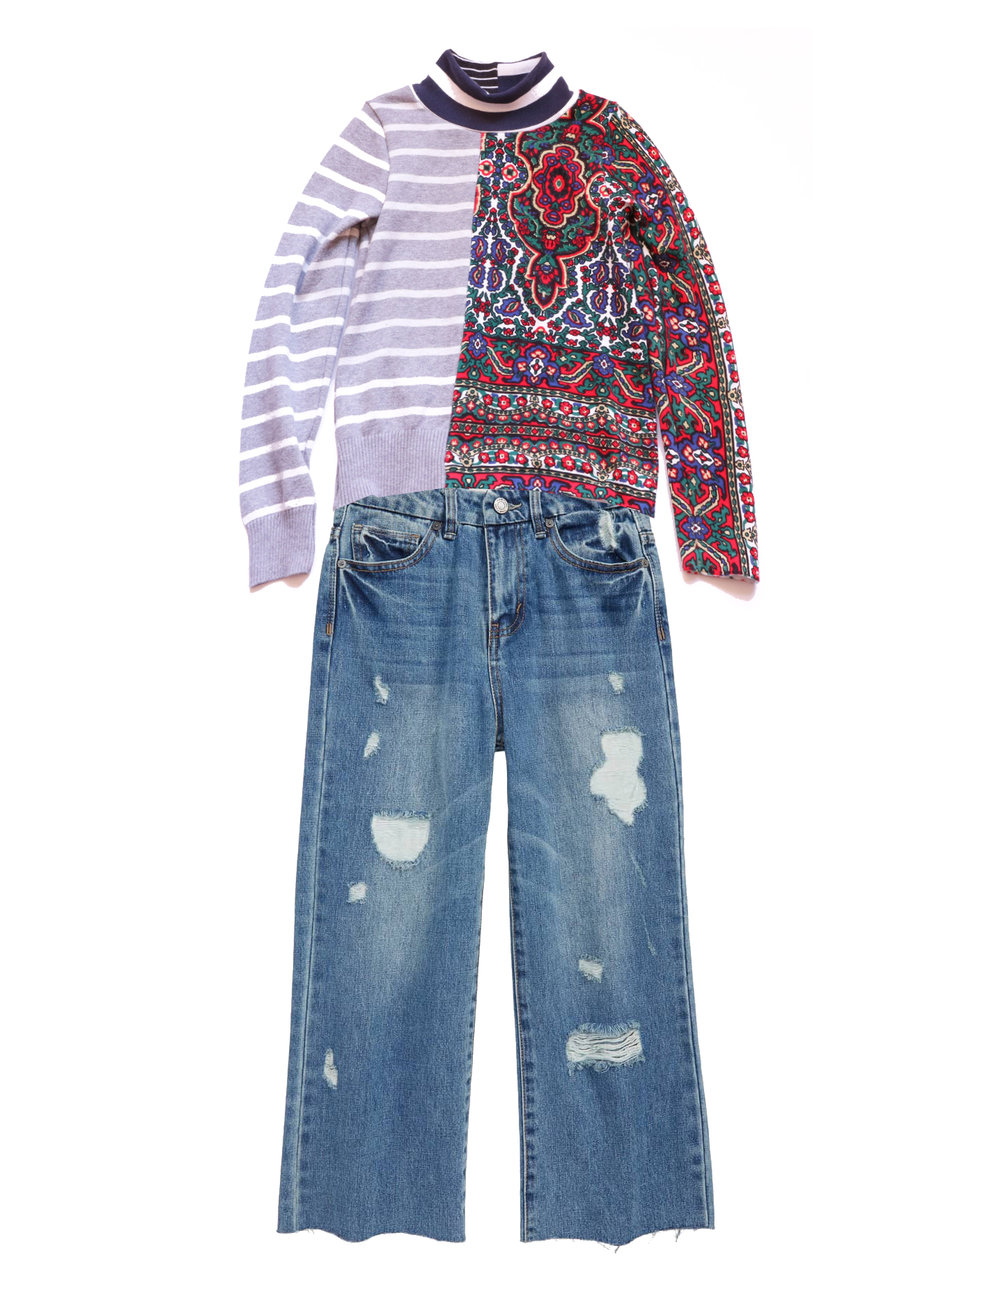 jeans 8-10 paisley-gray-stripe-ls-sweater-top.jpg